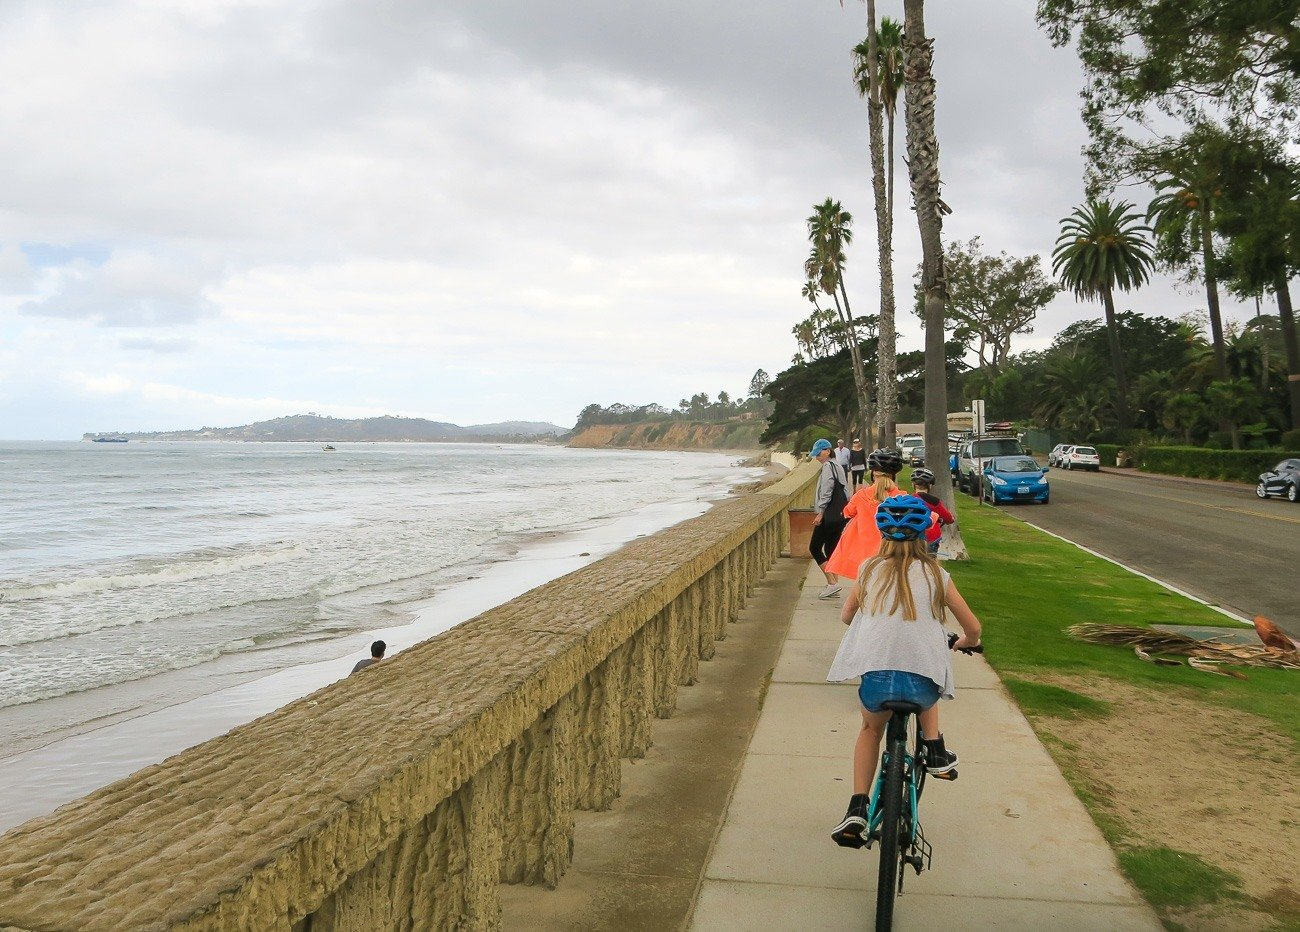 Biking from Montecito to Stearns Wharf in Santa Barbara